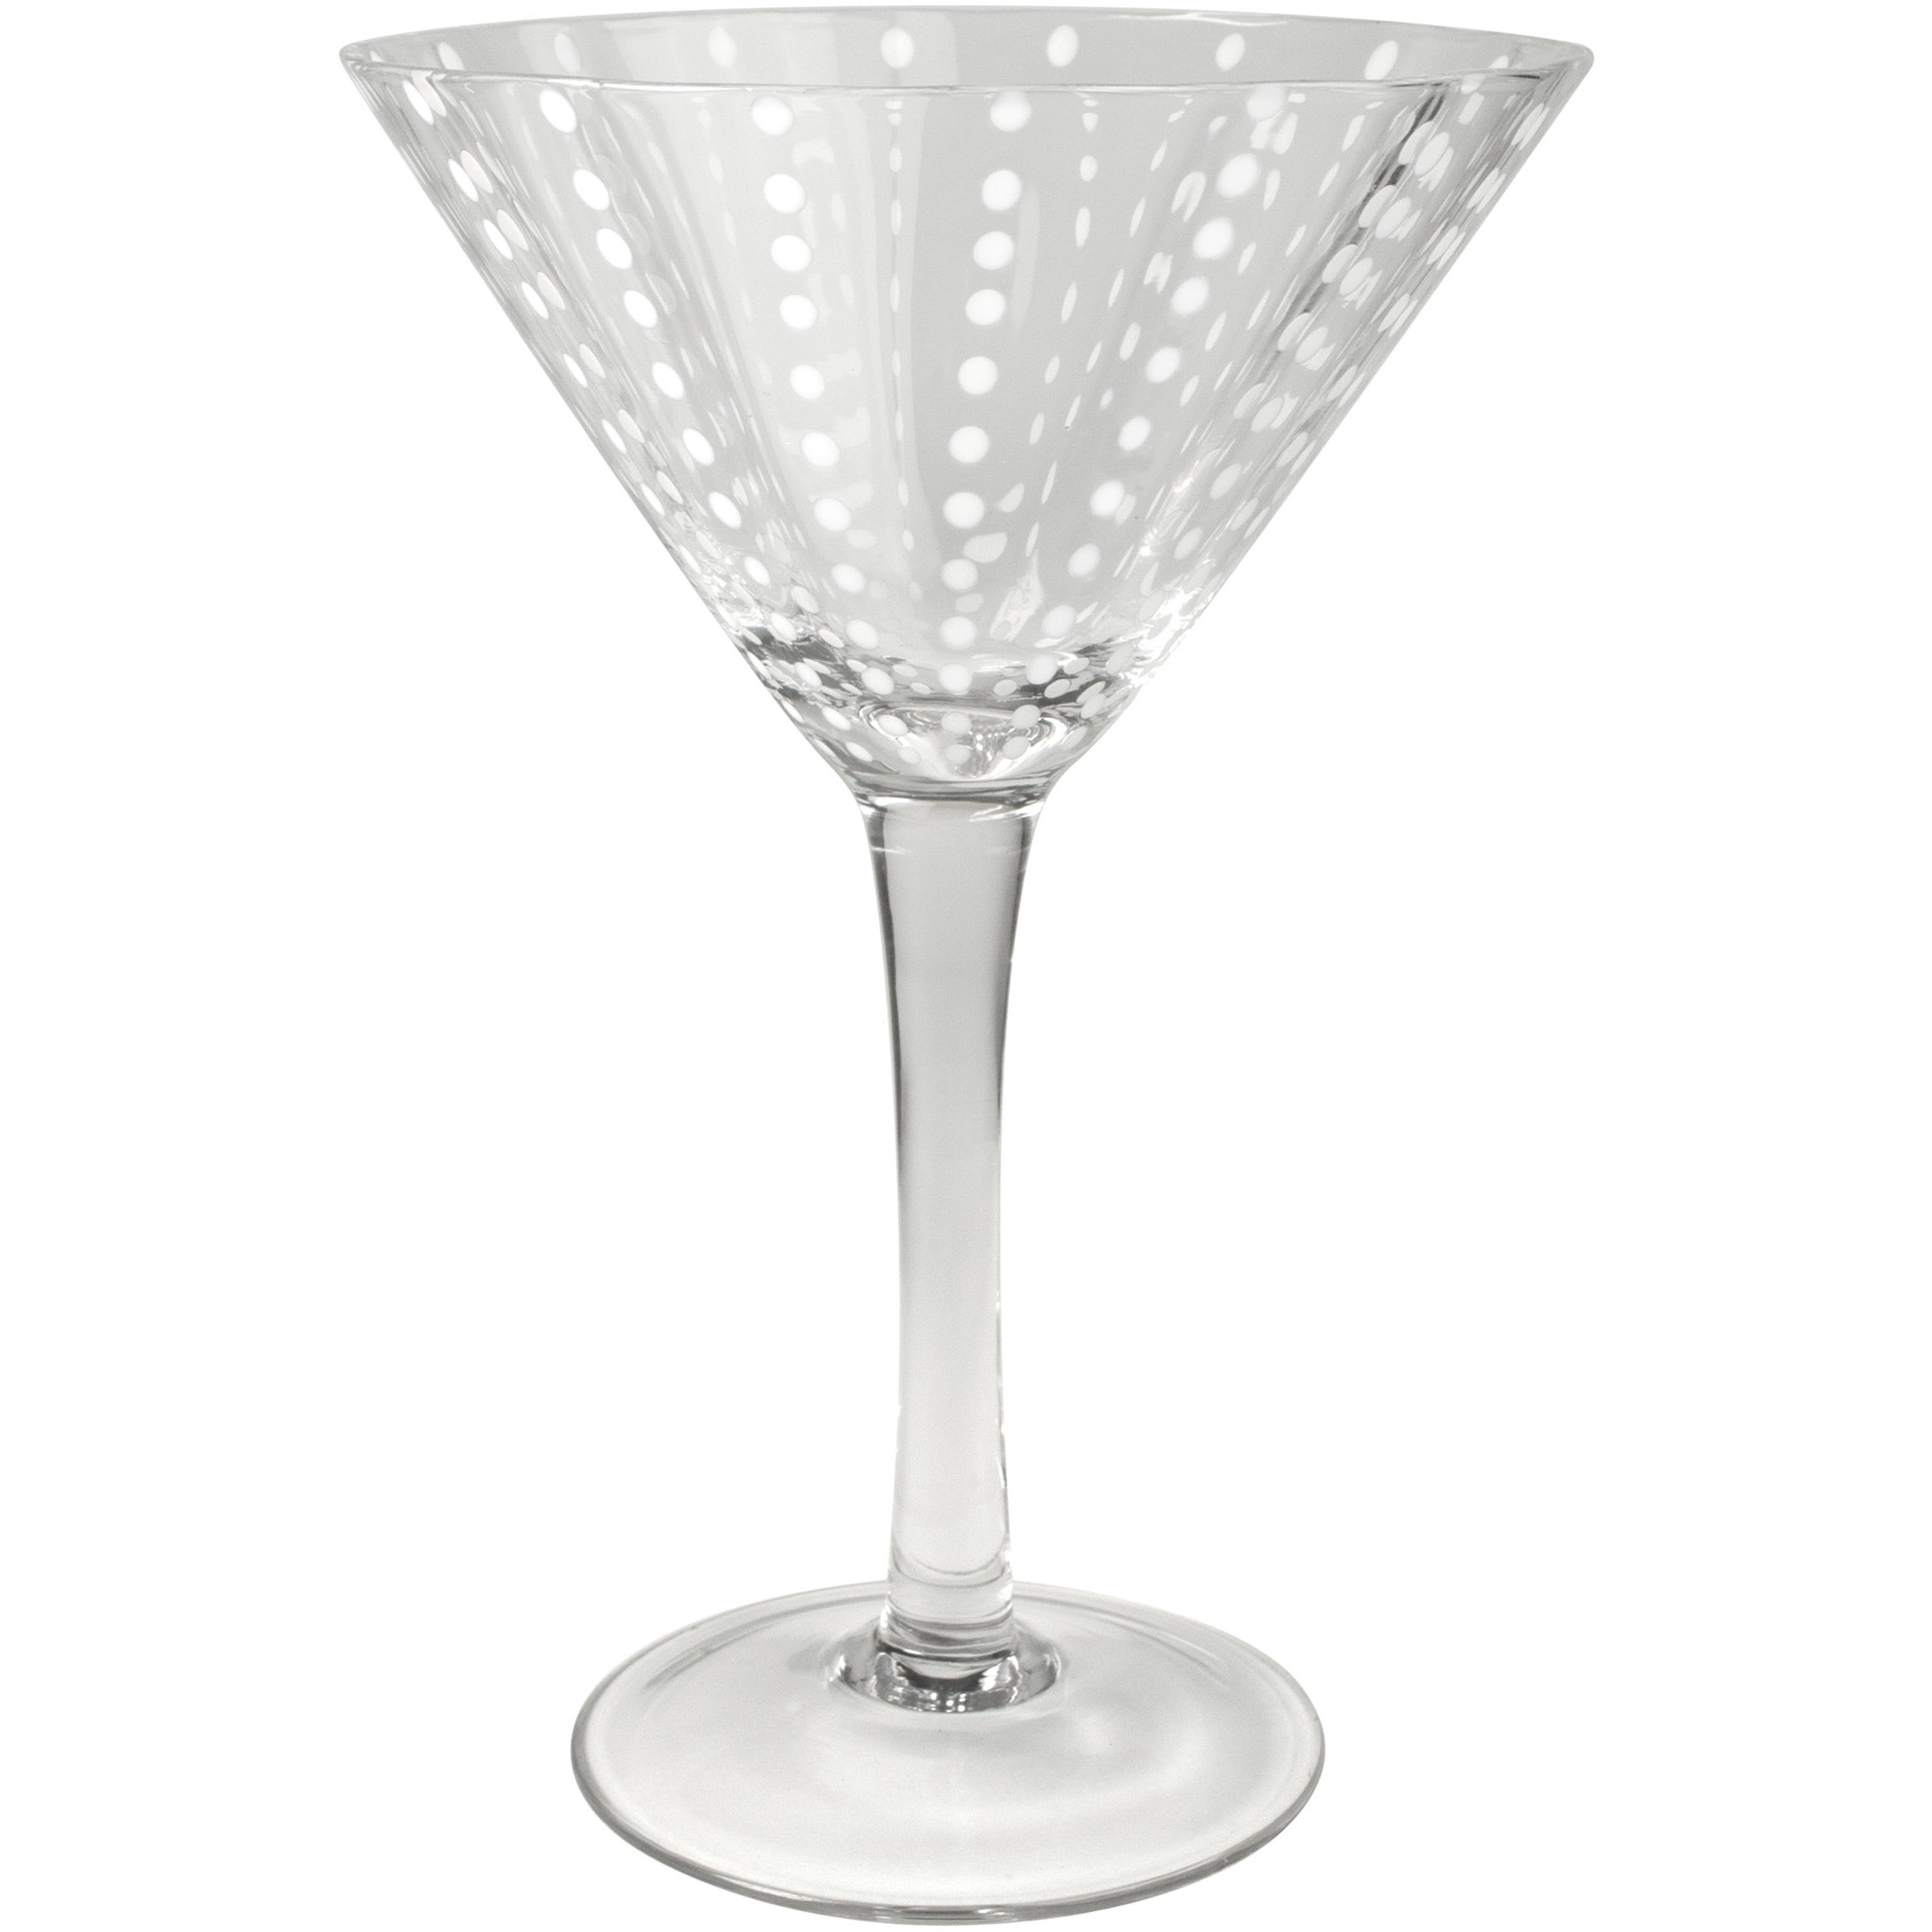 Artland Cambria Clear Martini Bar Glass, 8 Ounce